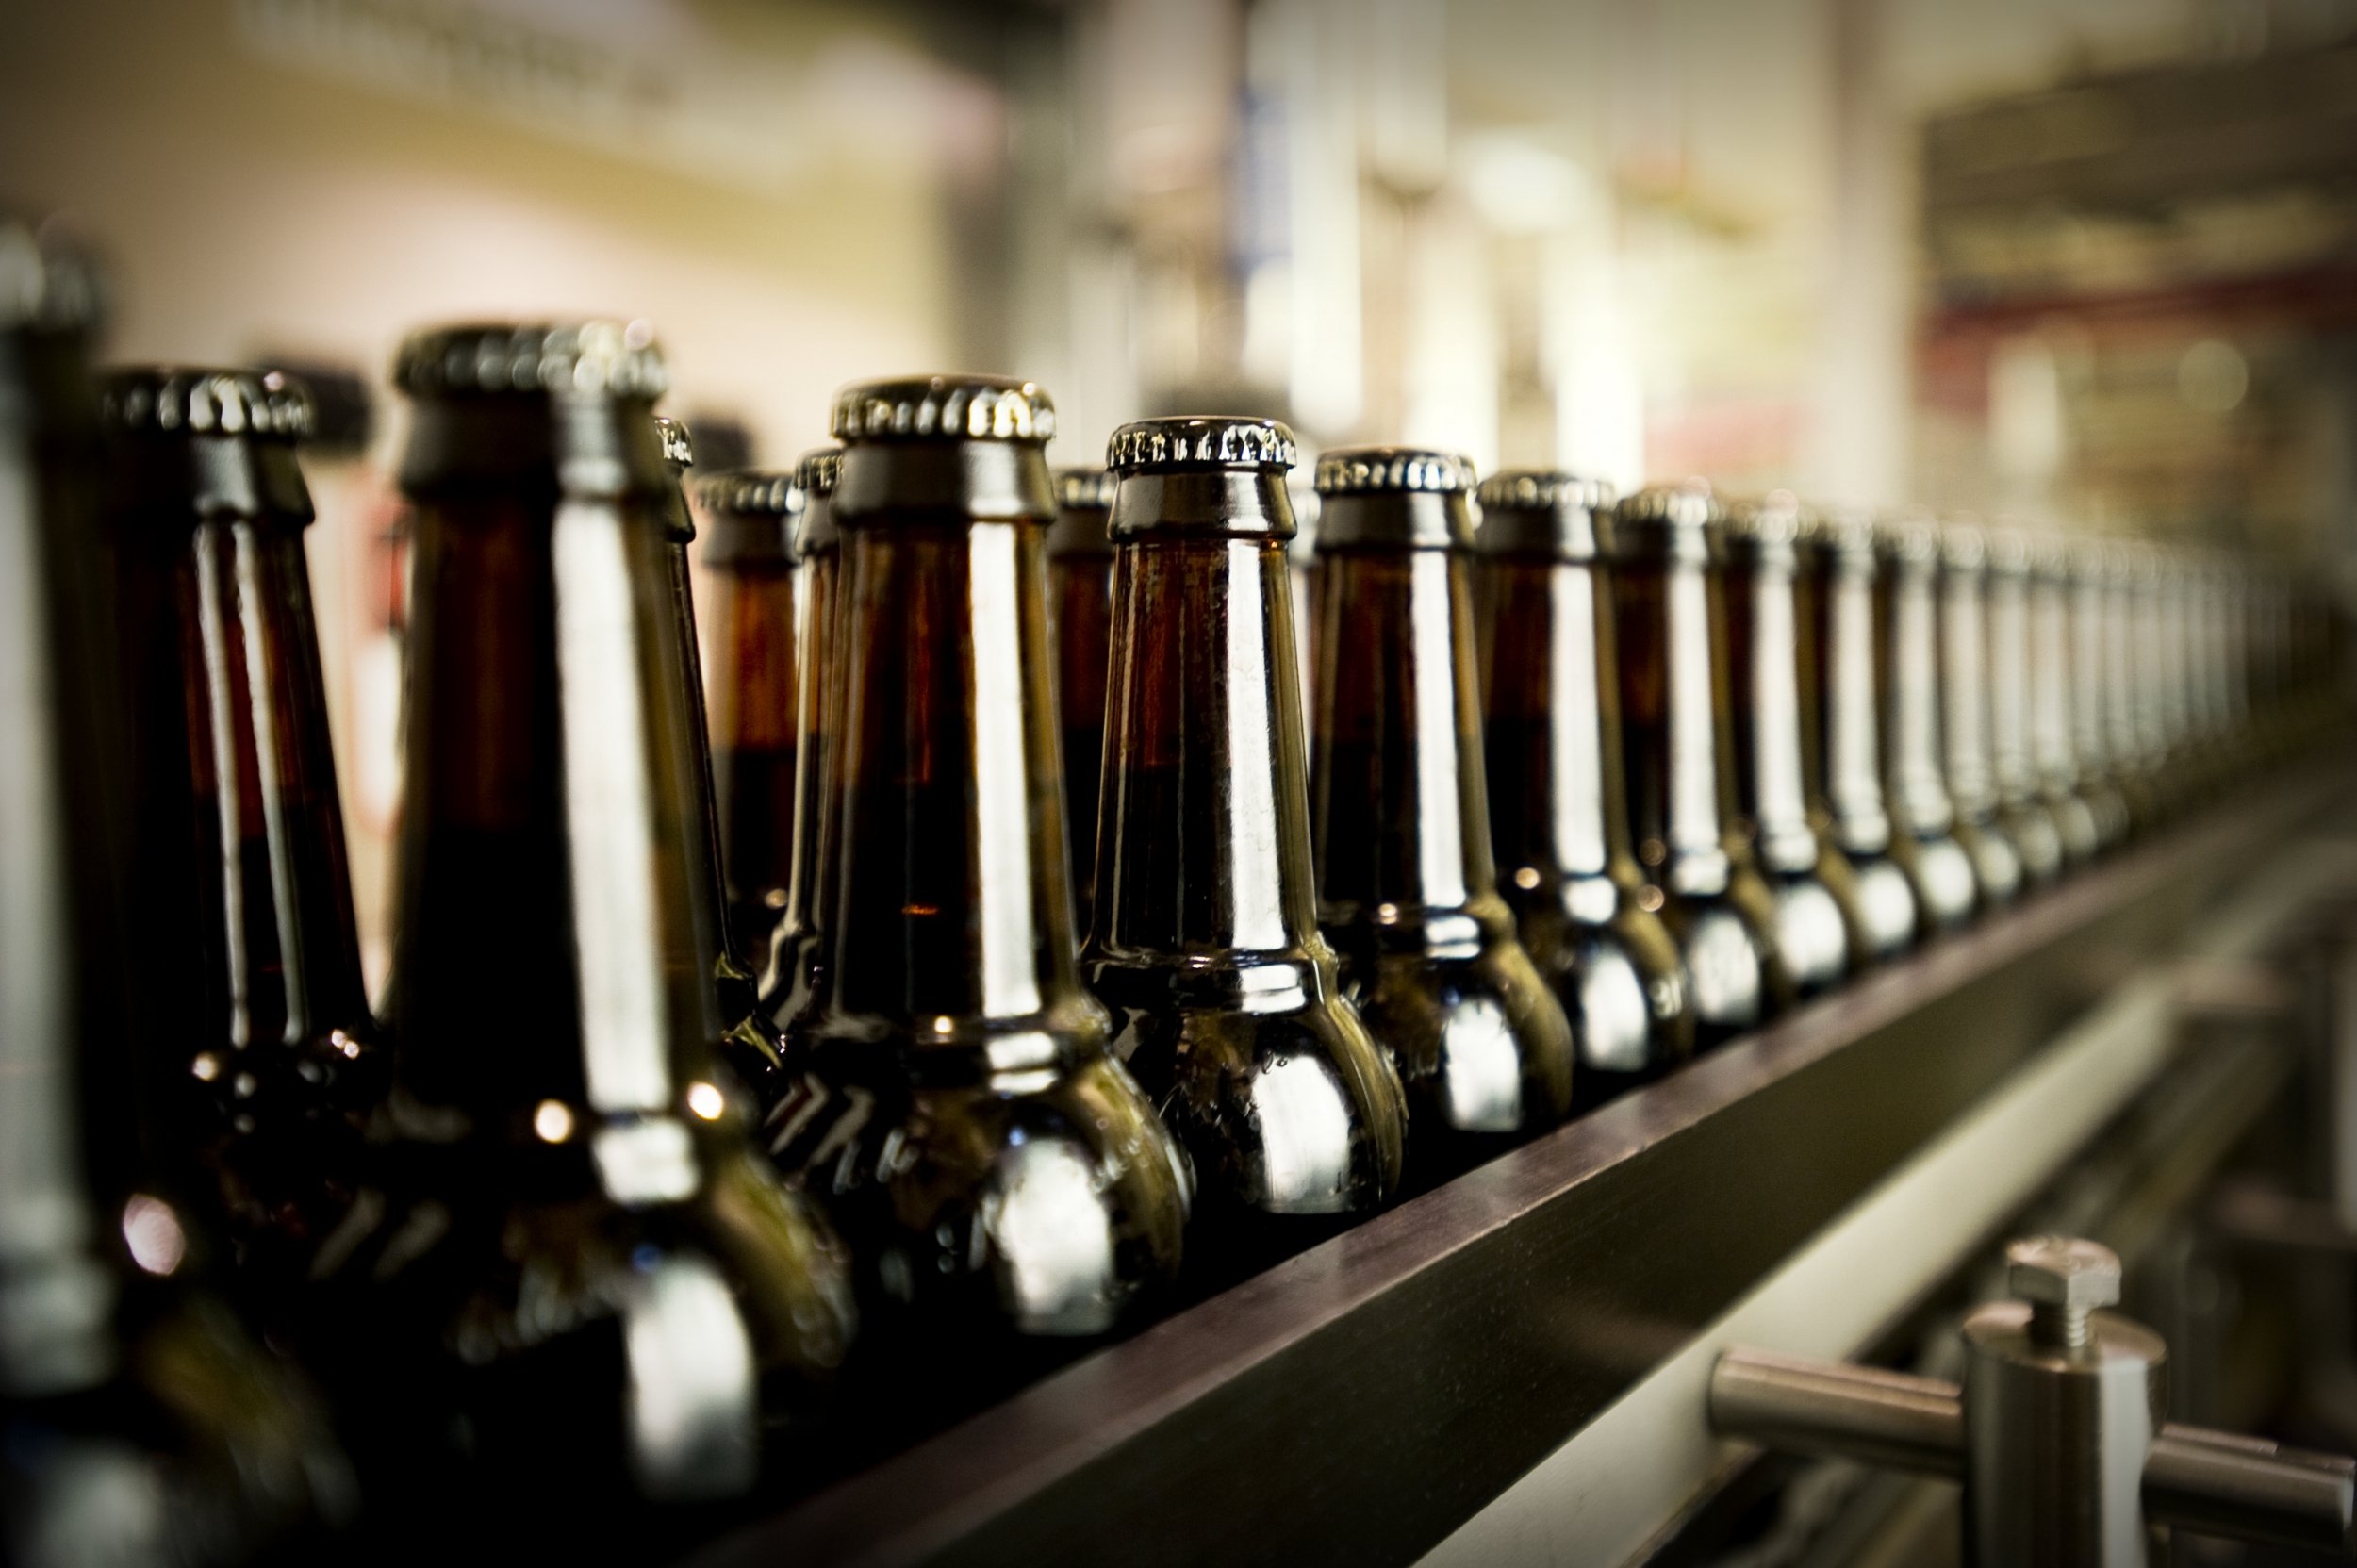 Beer is actually starting to run out due to CO2 shortage